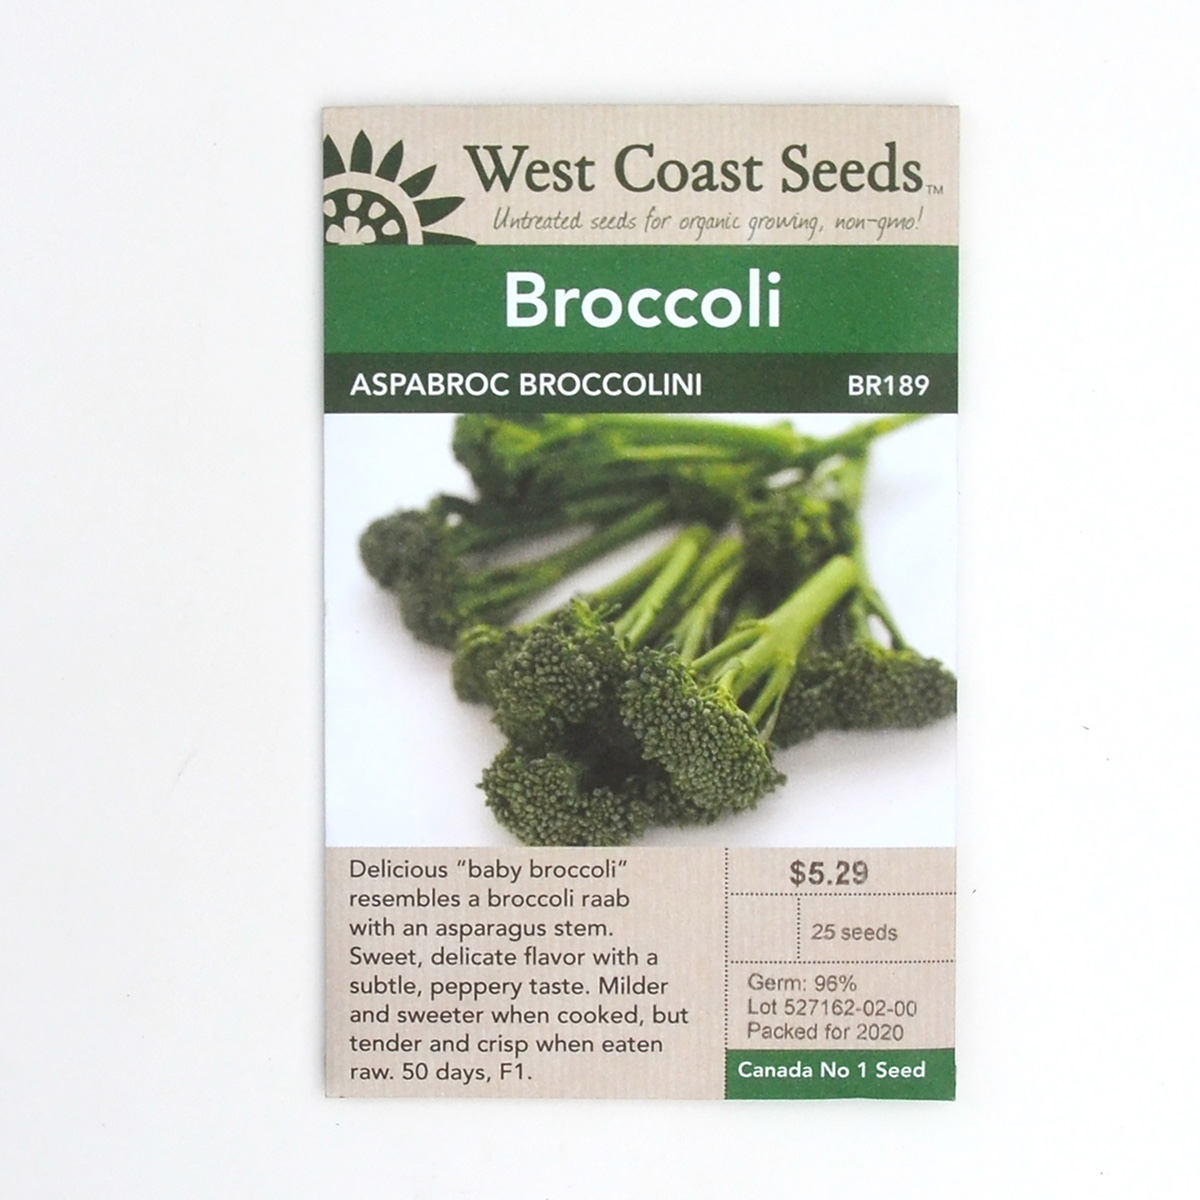 Broccoli Aspabroc Broccolini Seeds BR189